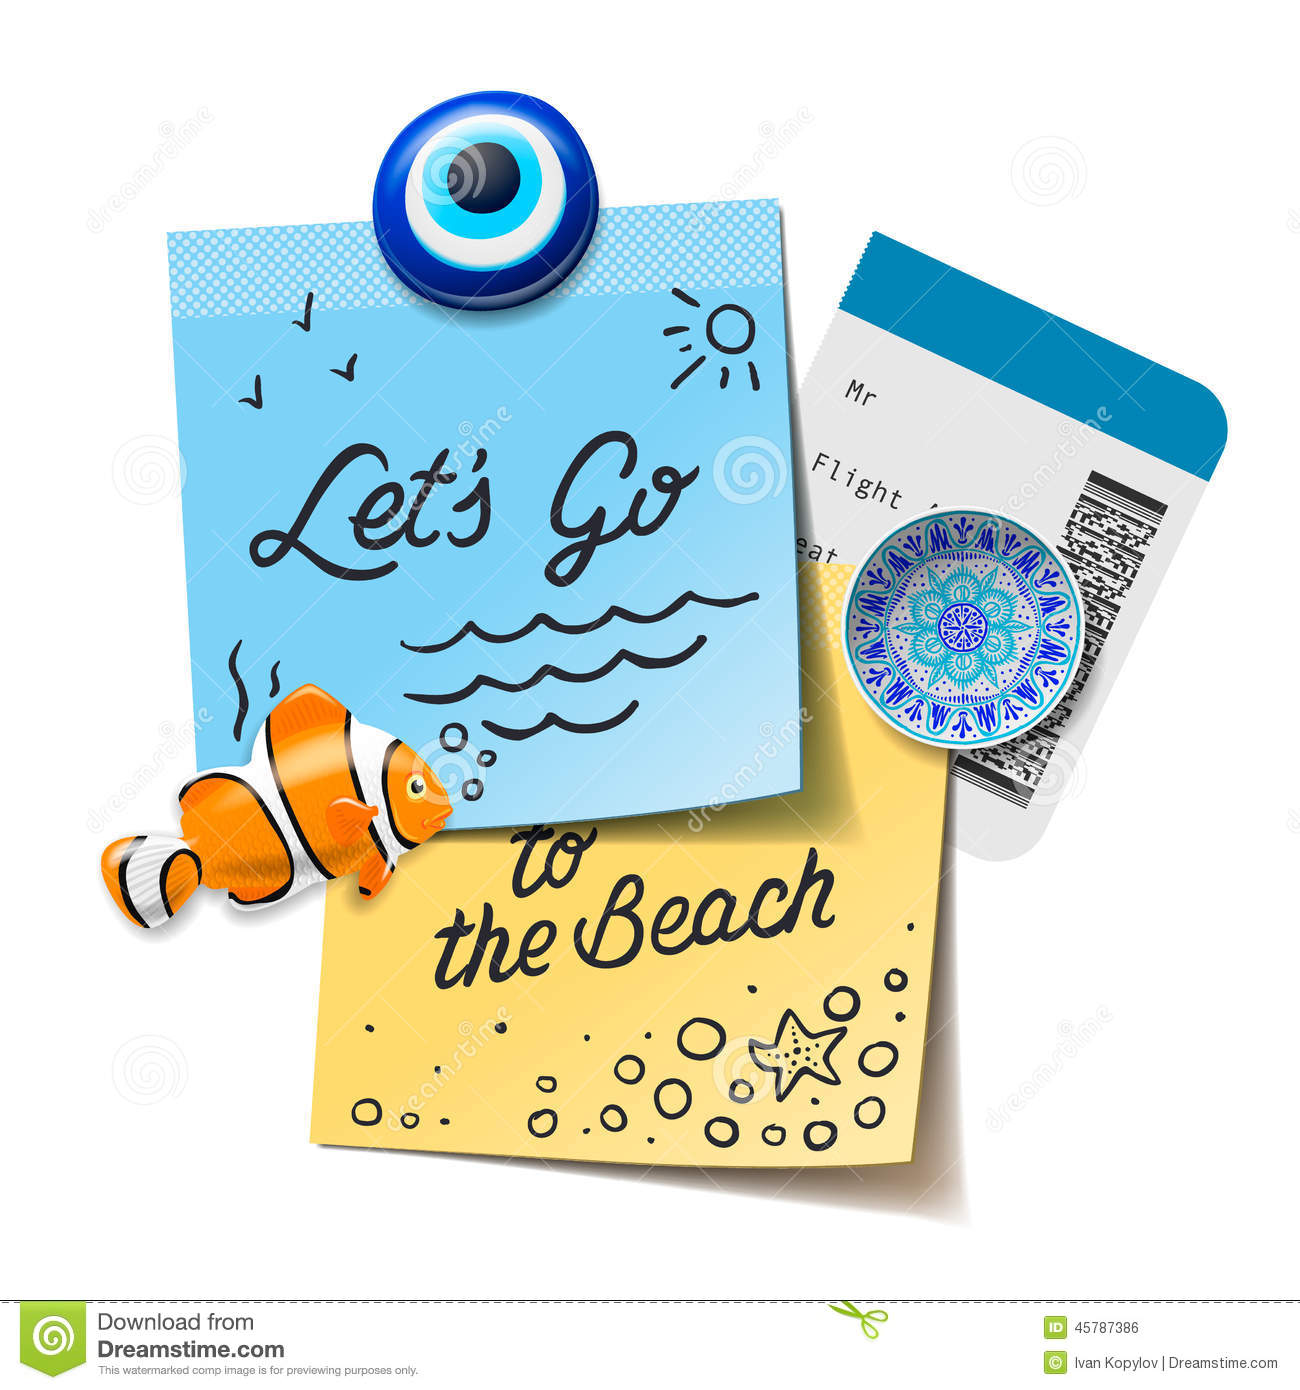 Travel And Tourism Concept. Lets Go To The Beach Text On The Post.